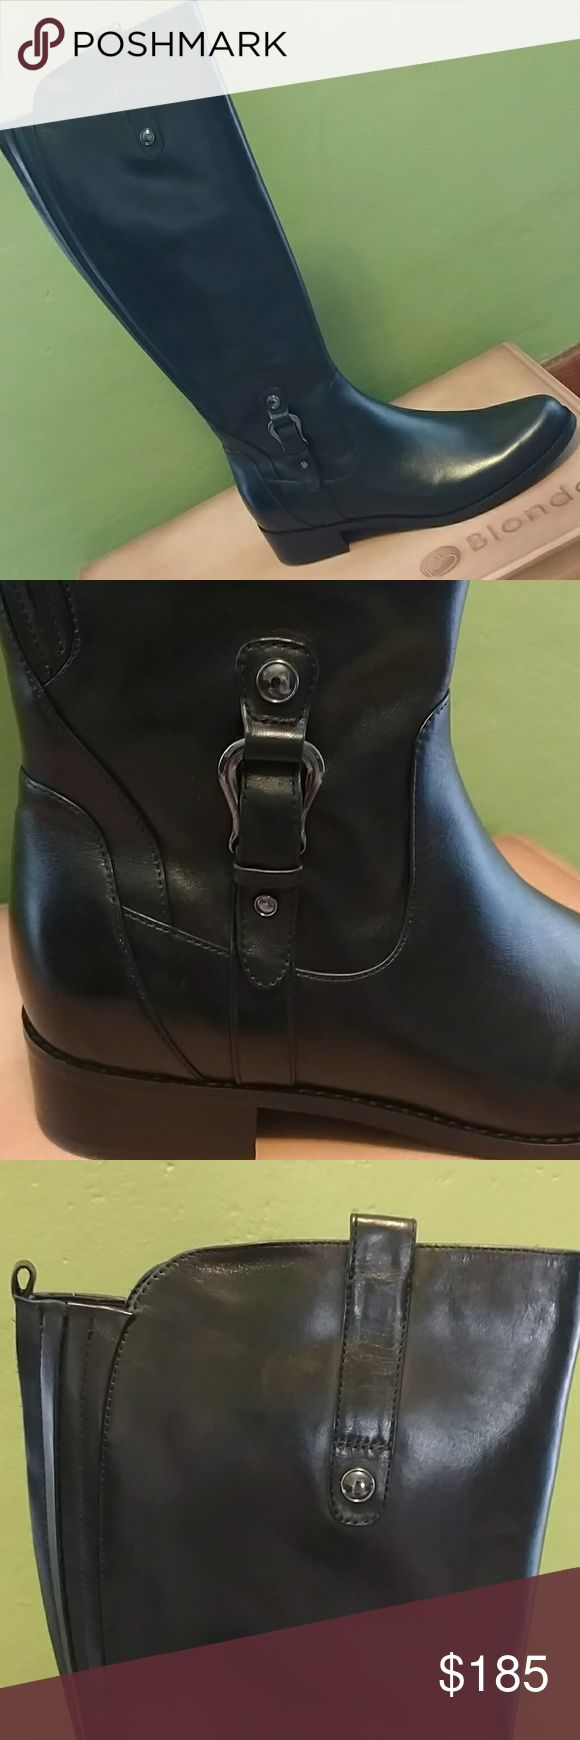 25 best ideas about leather boots on